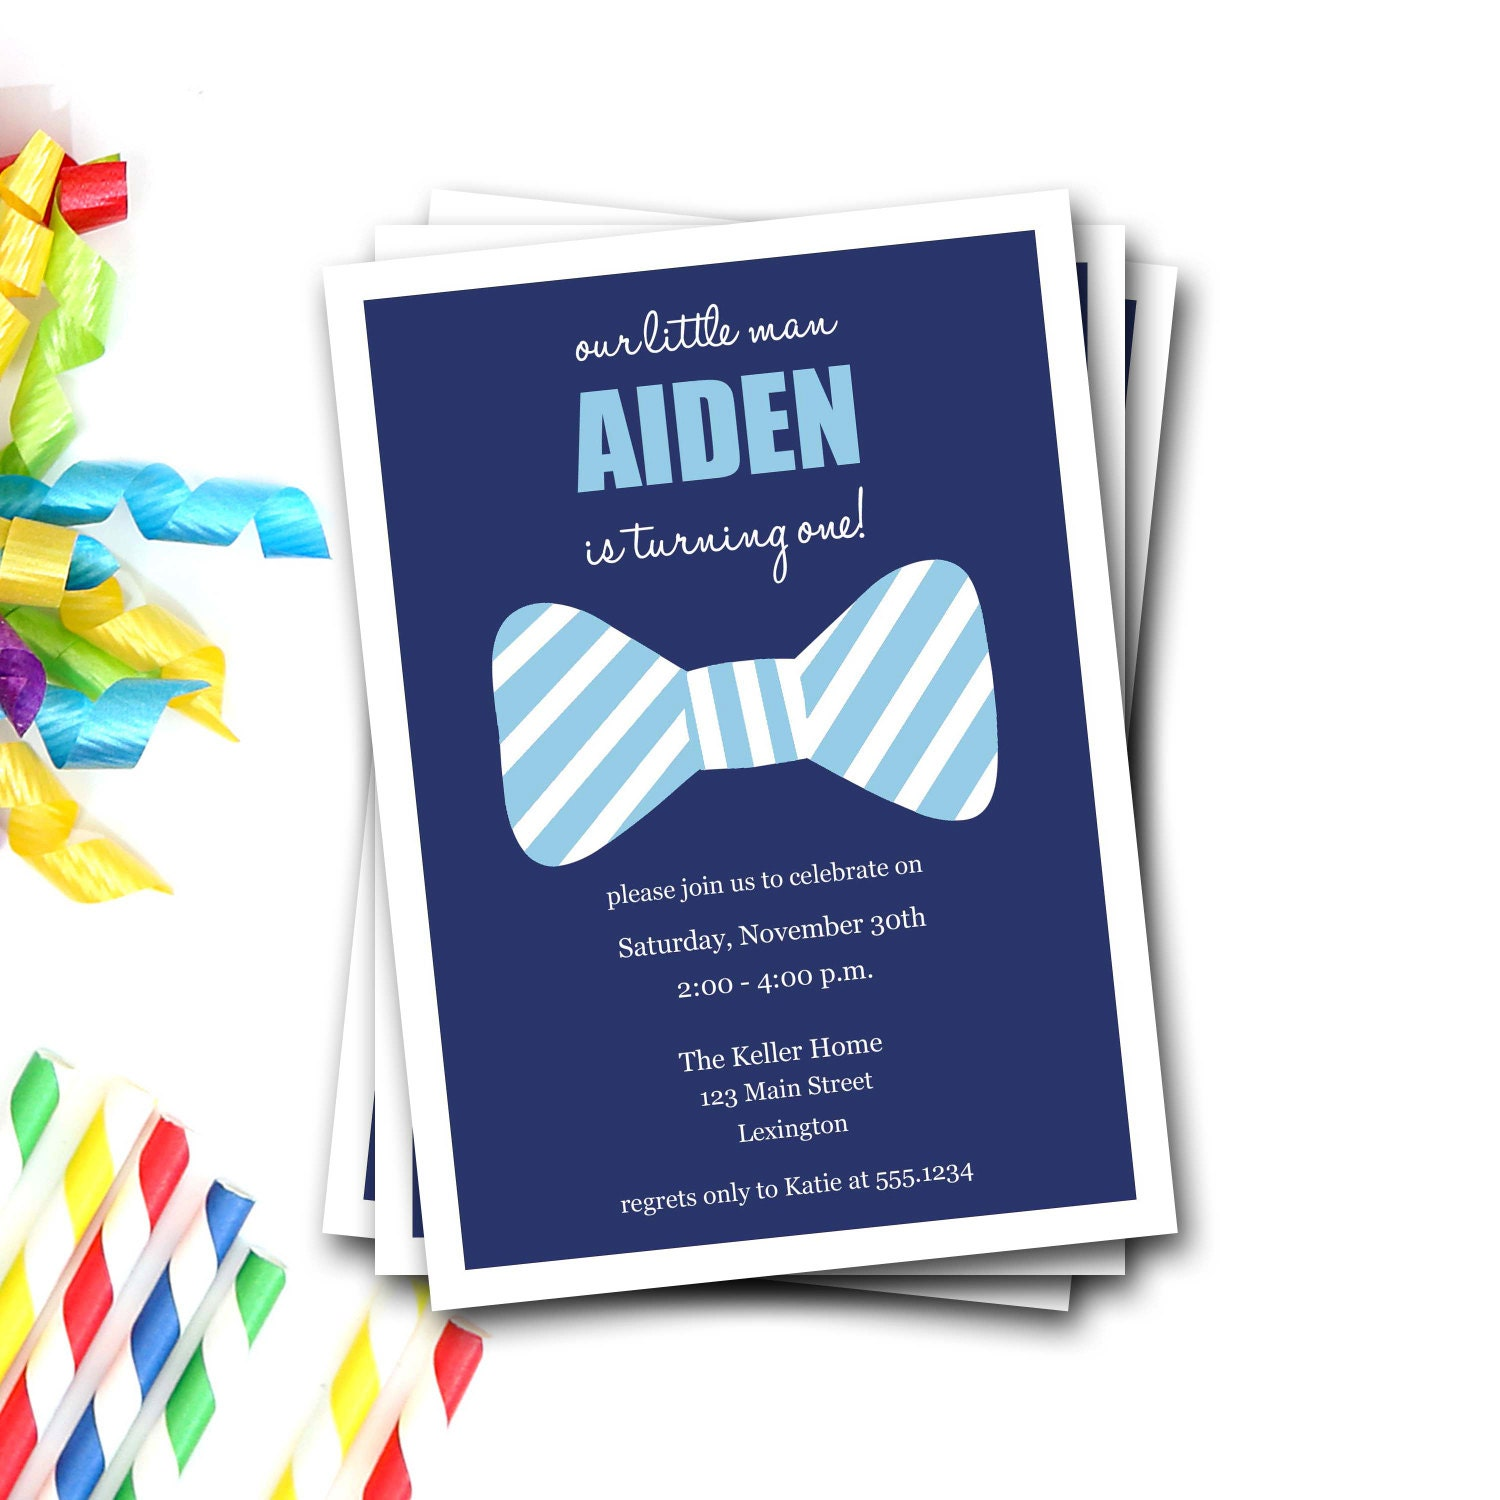 Bowtie birthday invitation little man invitation little man bowtie birthday invitation little man invitation little man birthday bowtie invitation bowtie party little man party diy printable filmwisefo